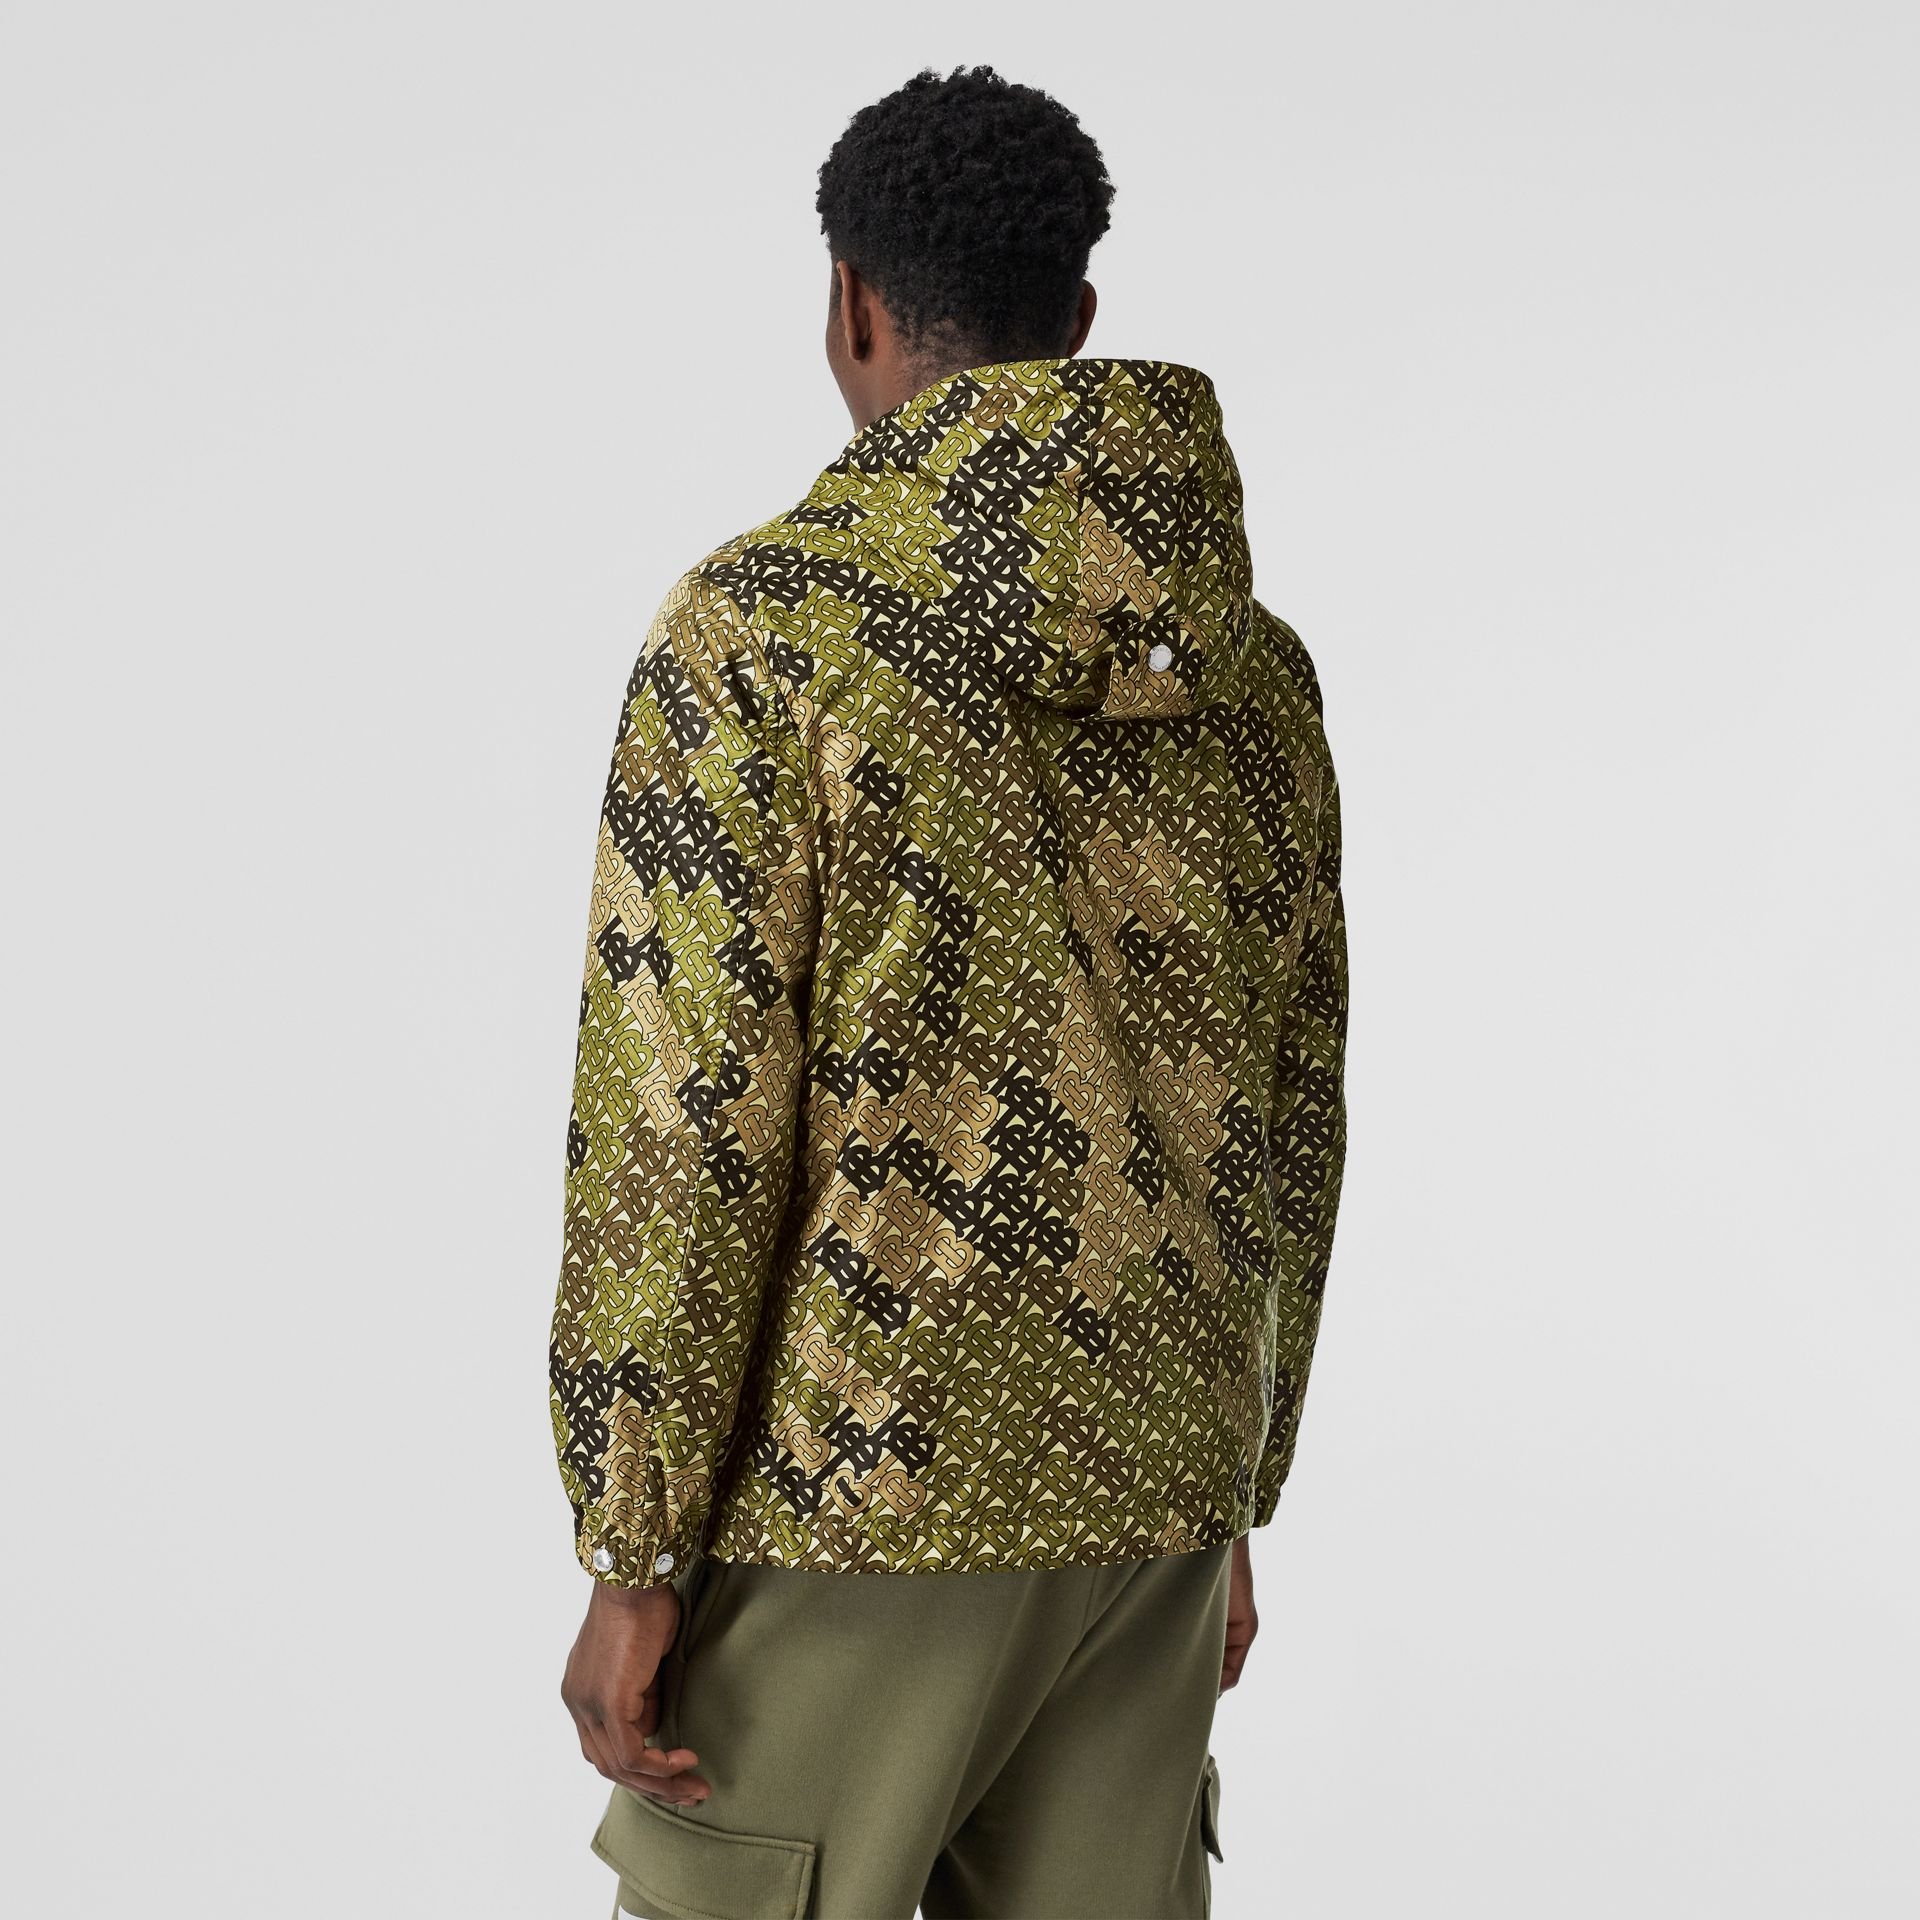 Monogram Print Nylon Hooded Jacket in Khaki Green - Men | Burberry Hong Kong S.A.R - gallery image 2